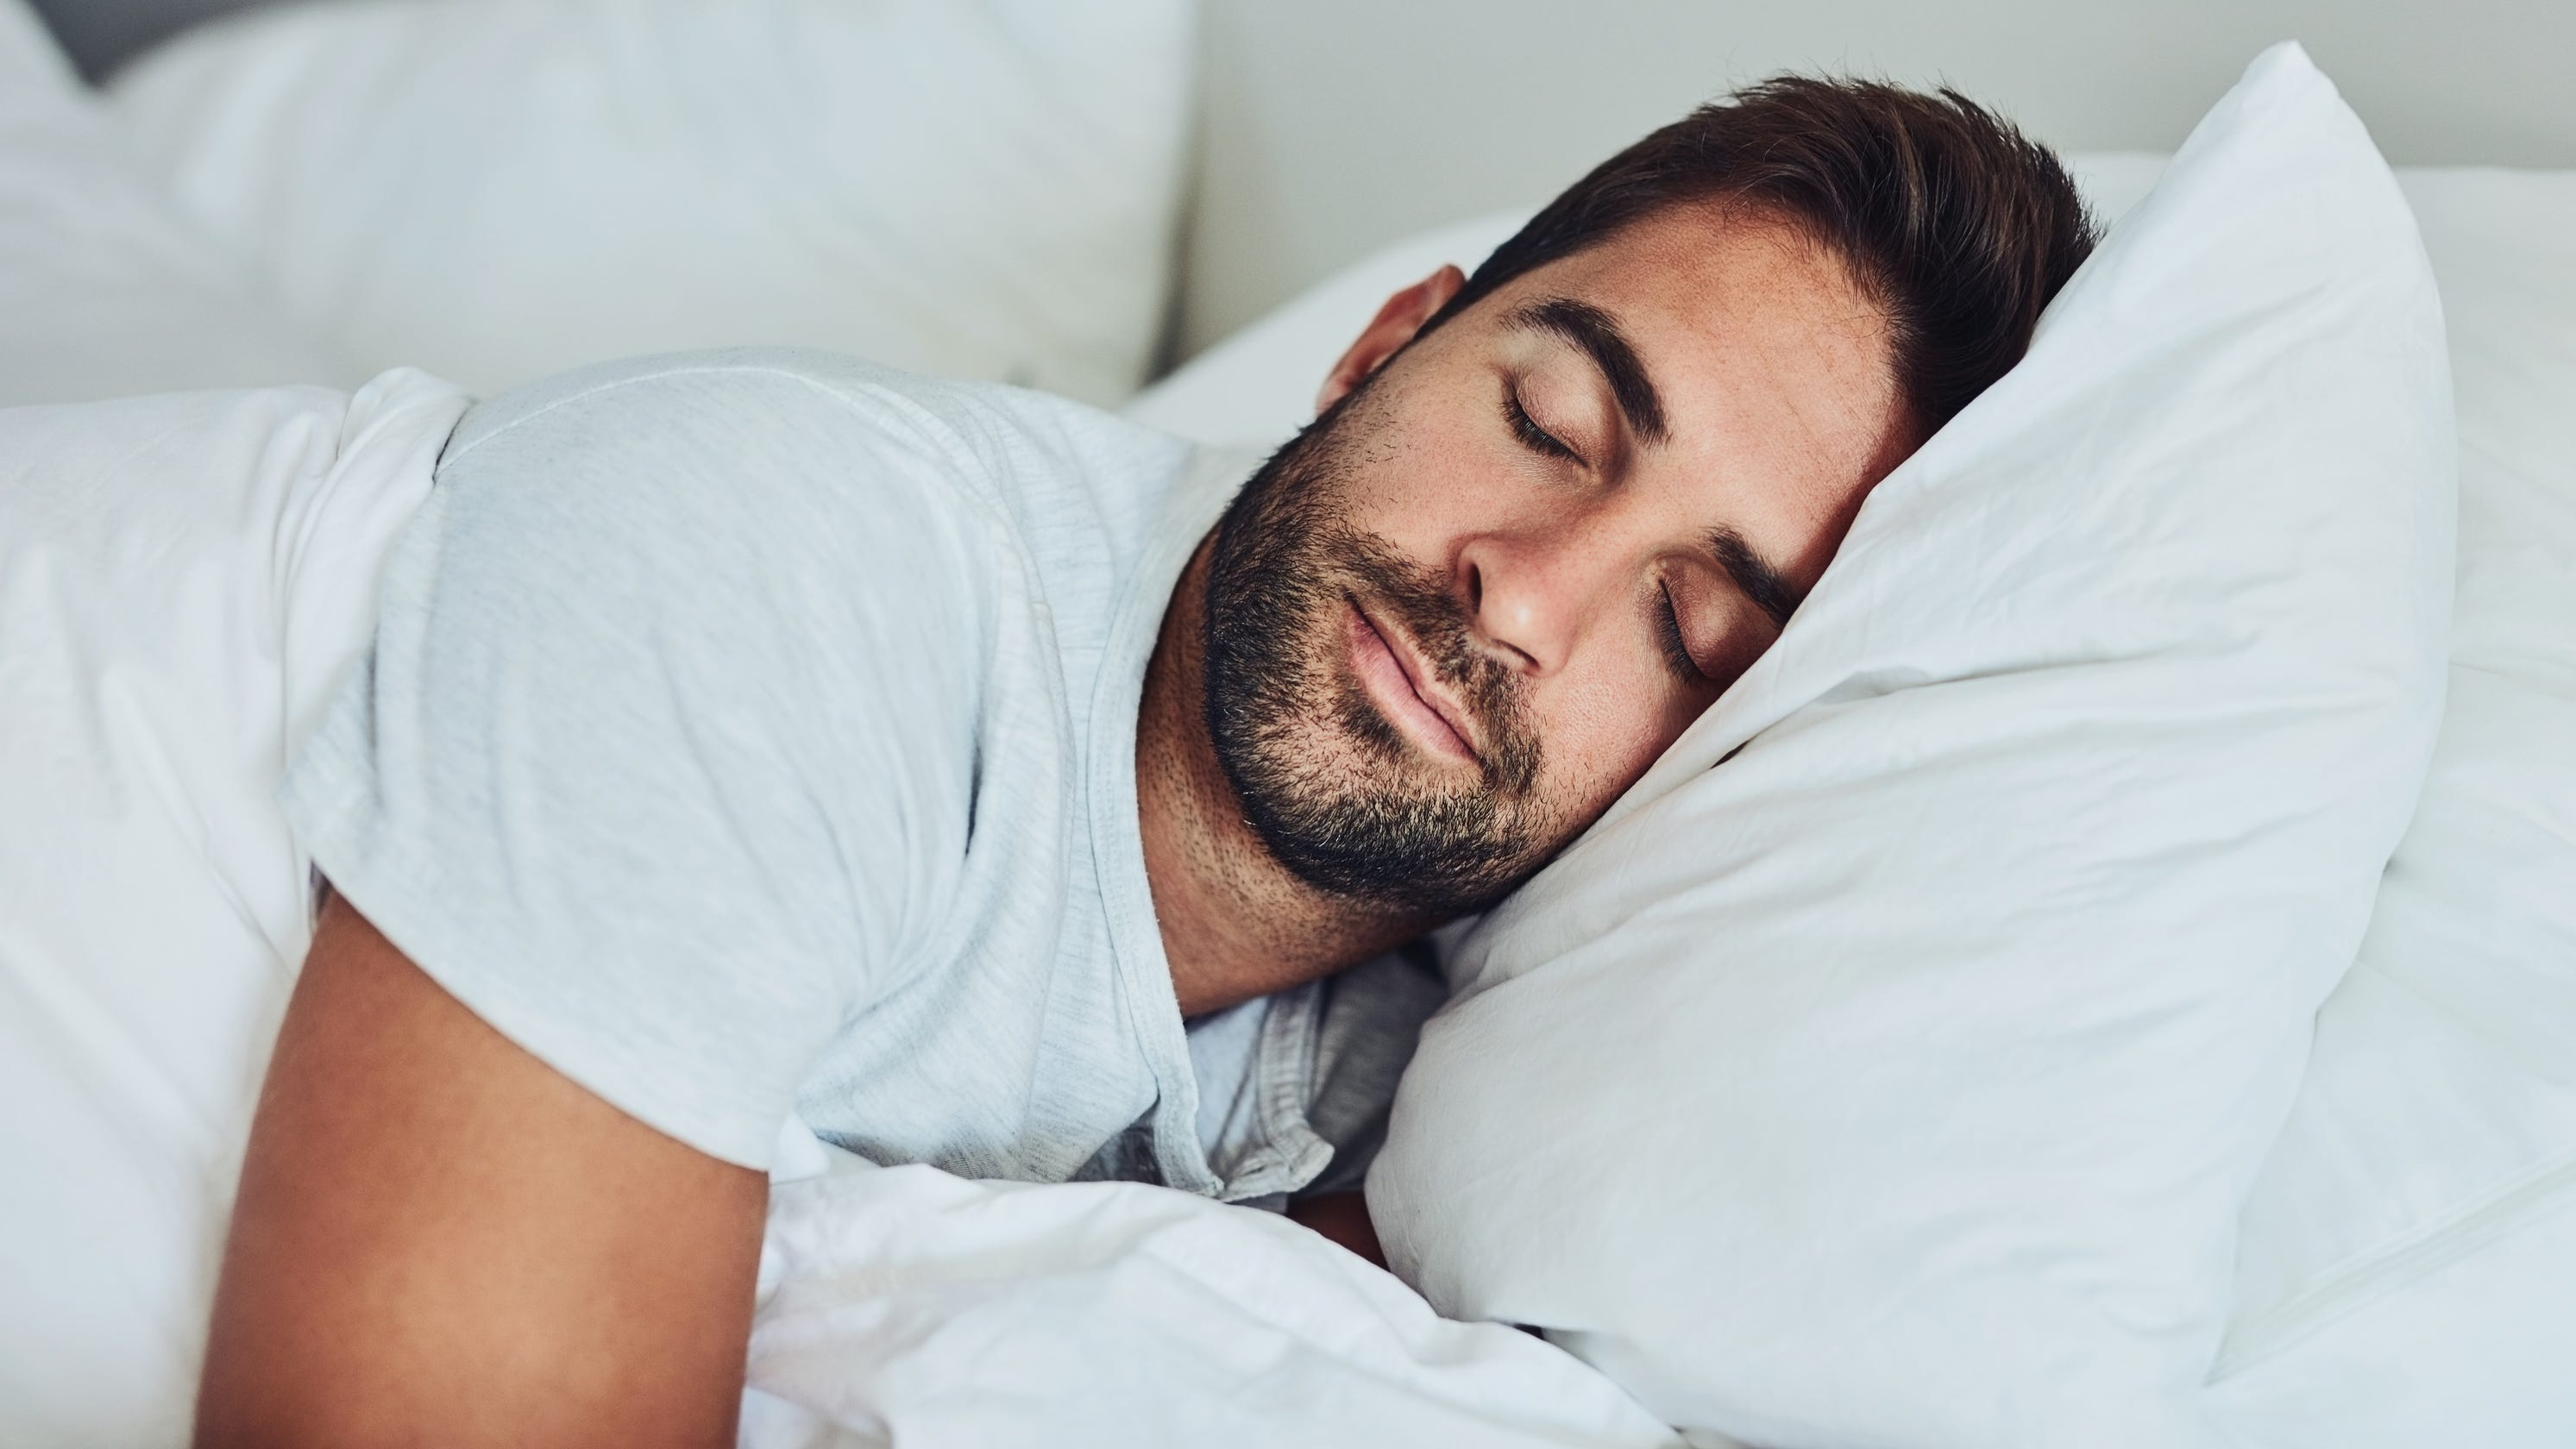 Lack of sleep could raise risk for stroke, early death ...